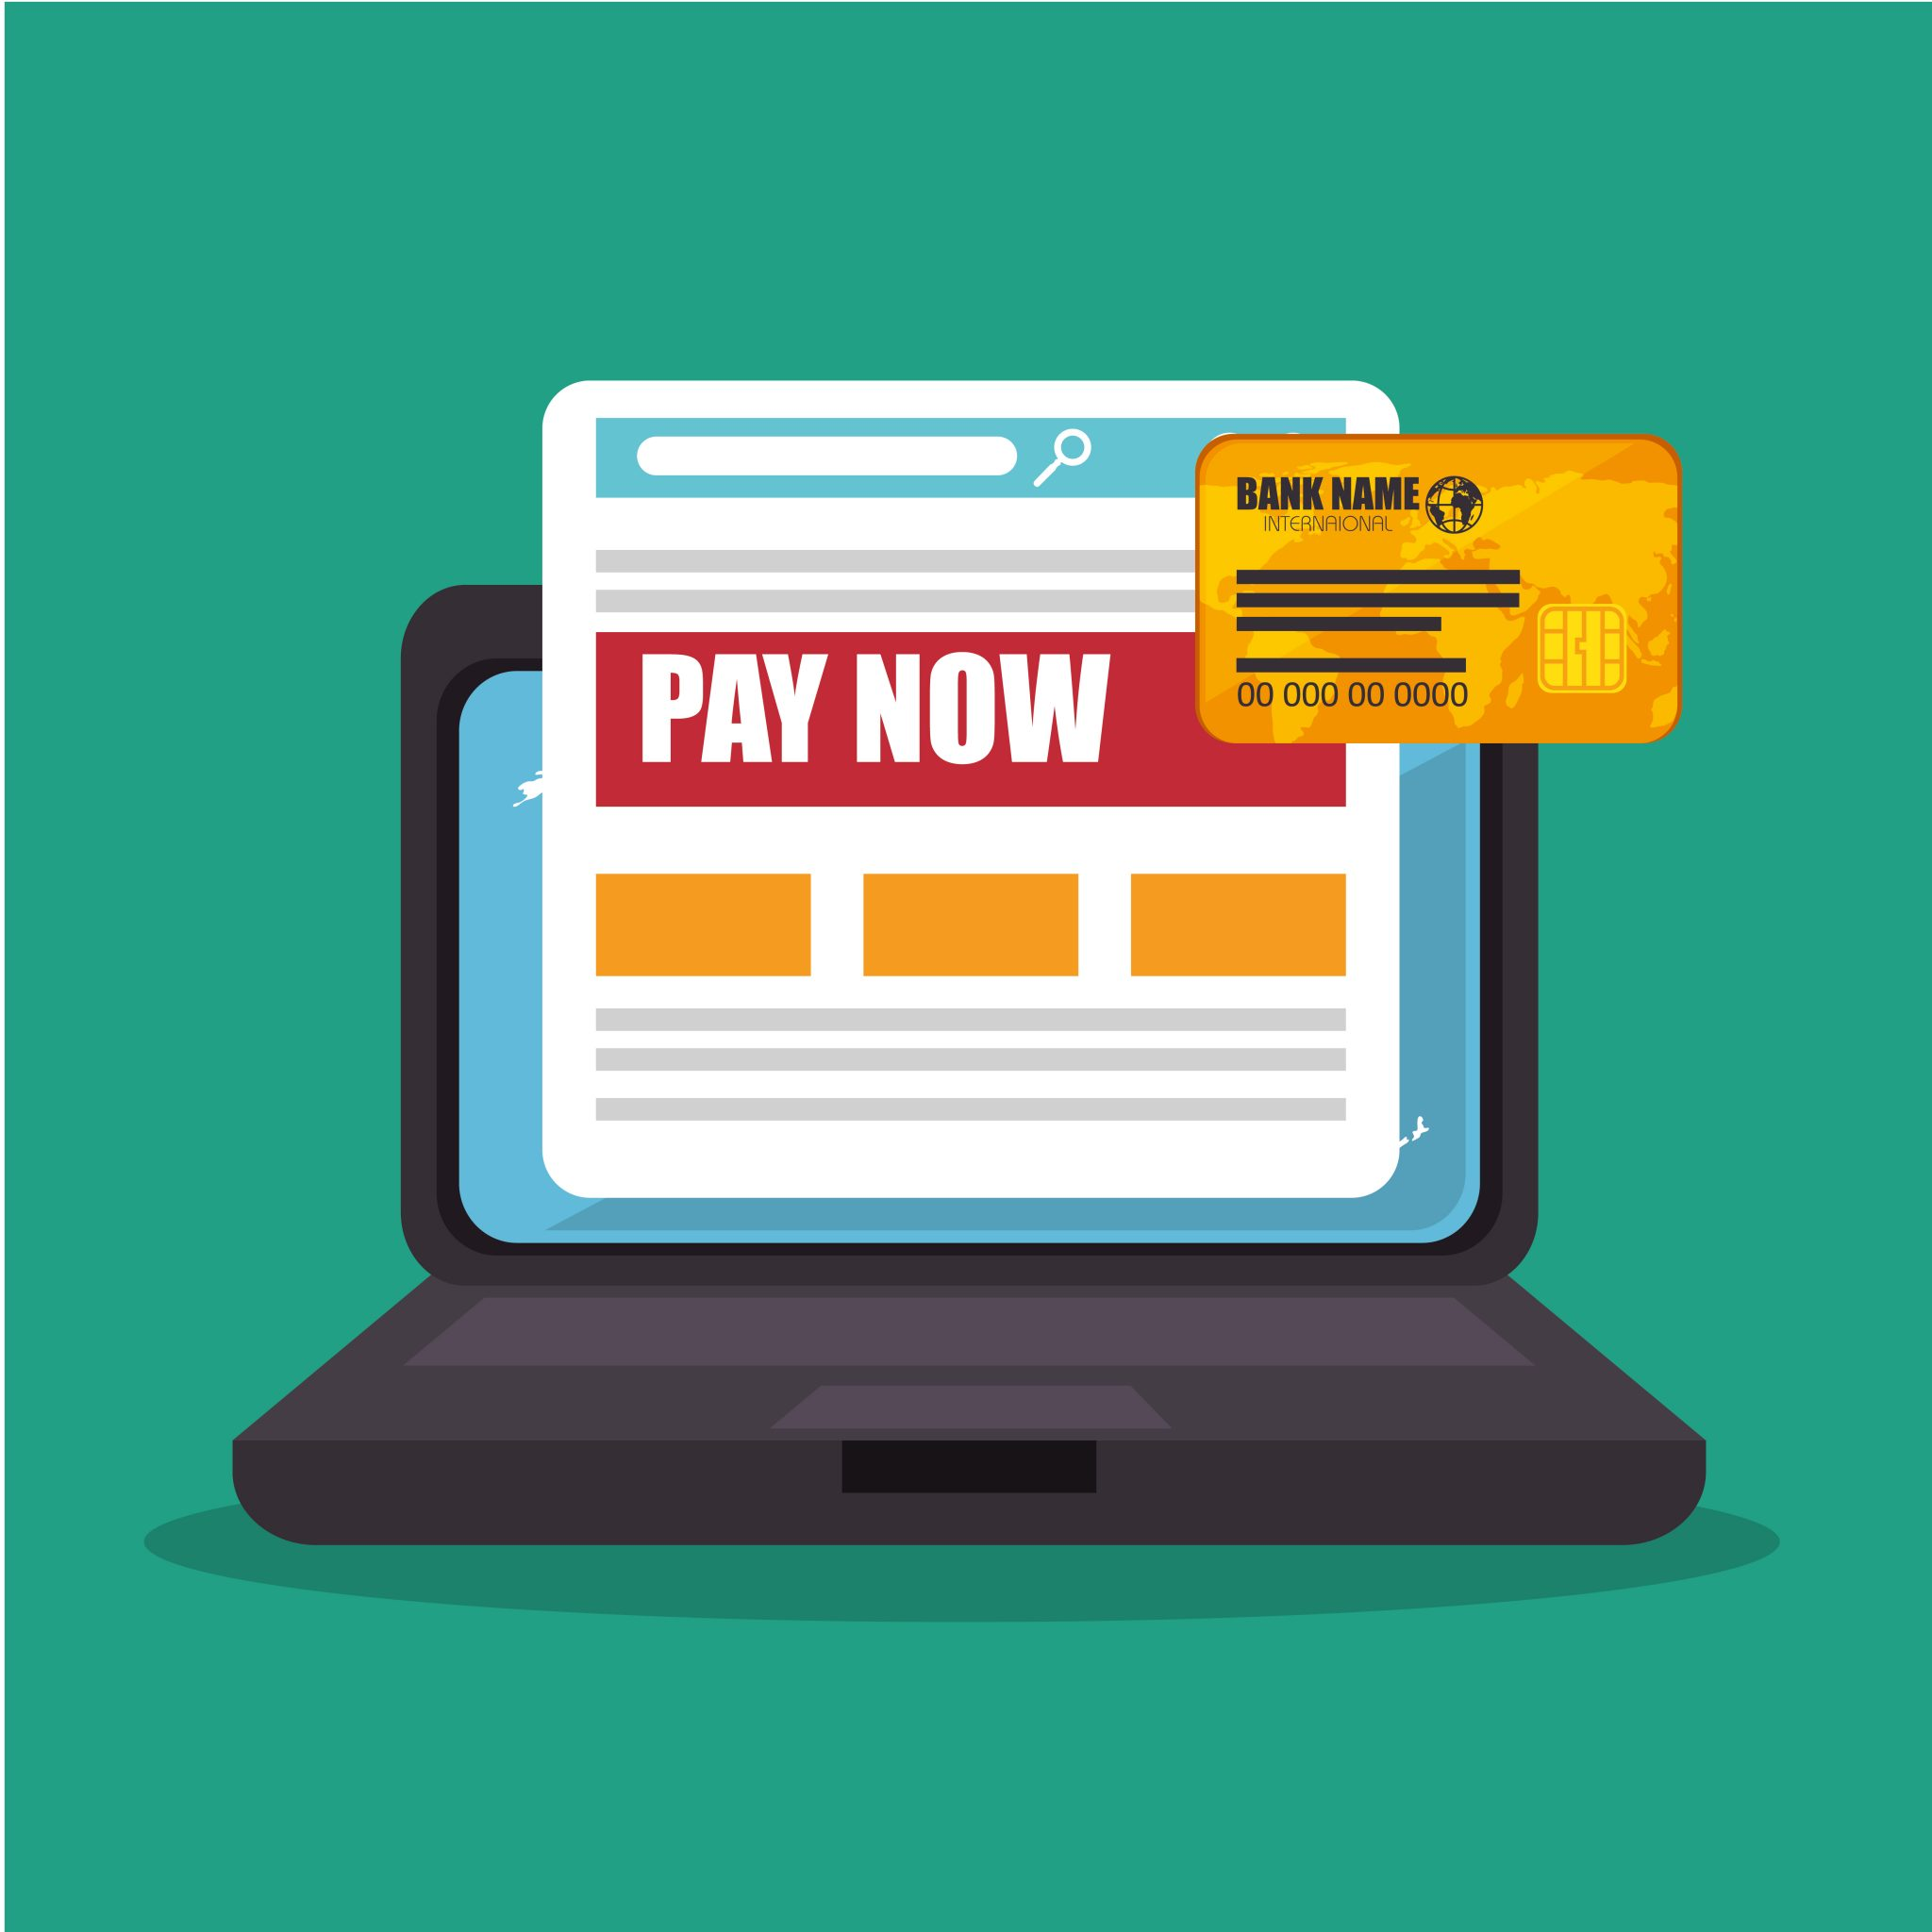 COVID-19 Triggers Changes in Payments Habits Amongst over Eight in Ten Consumers